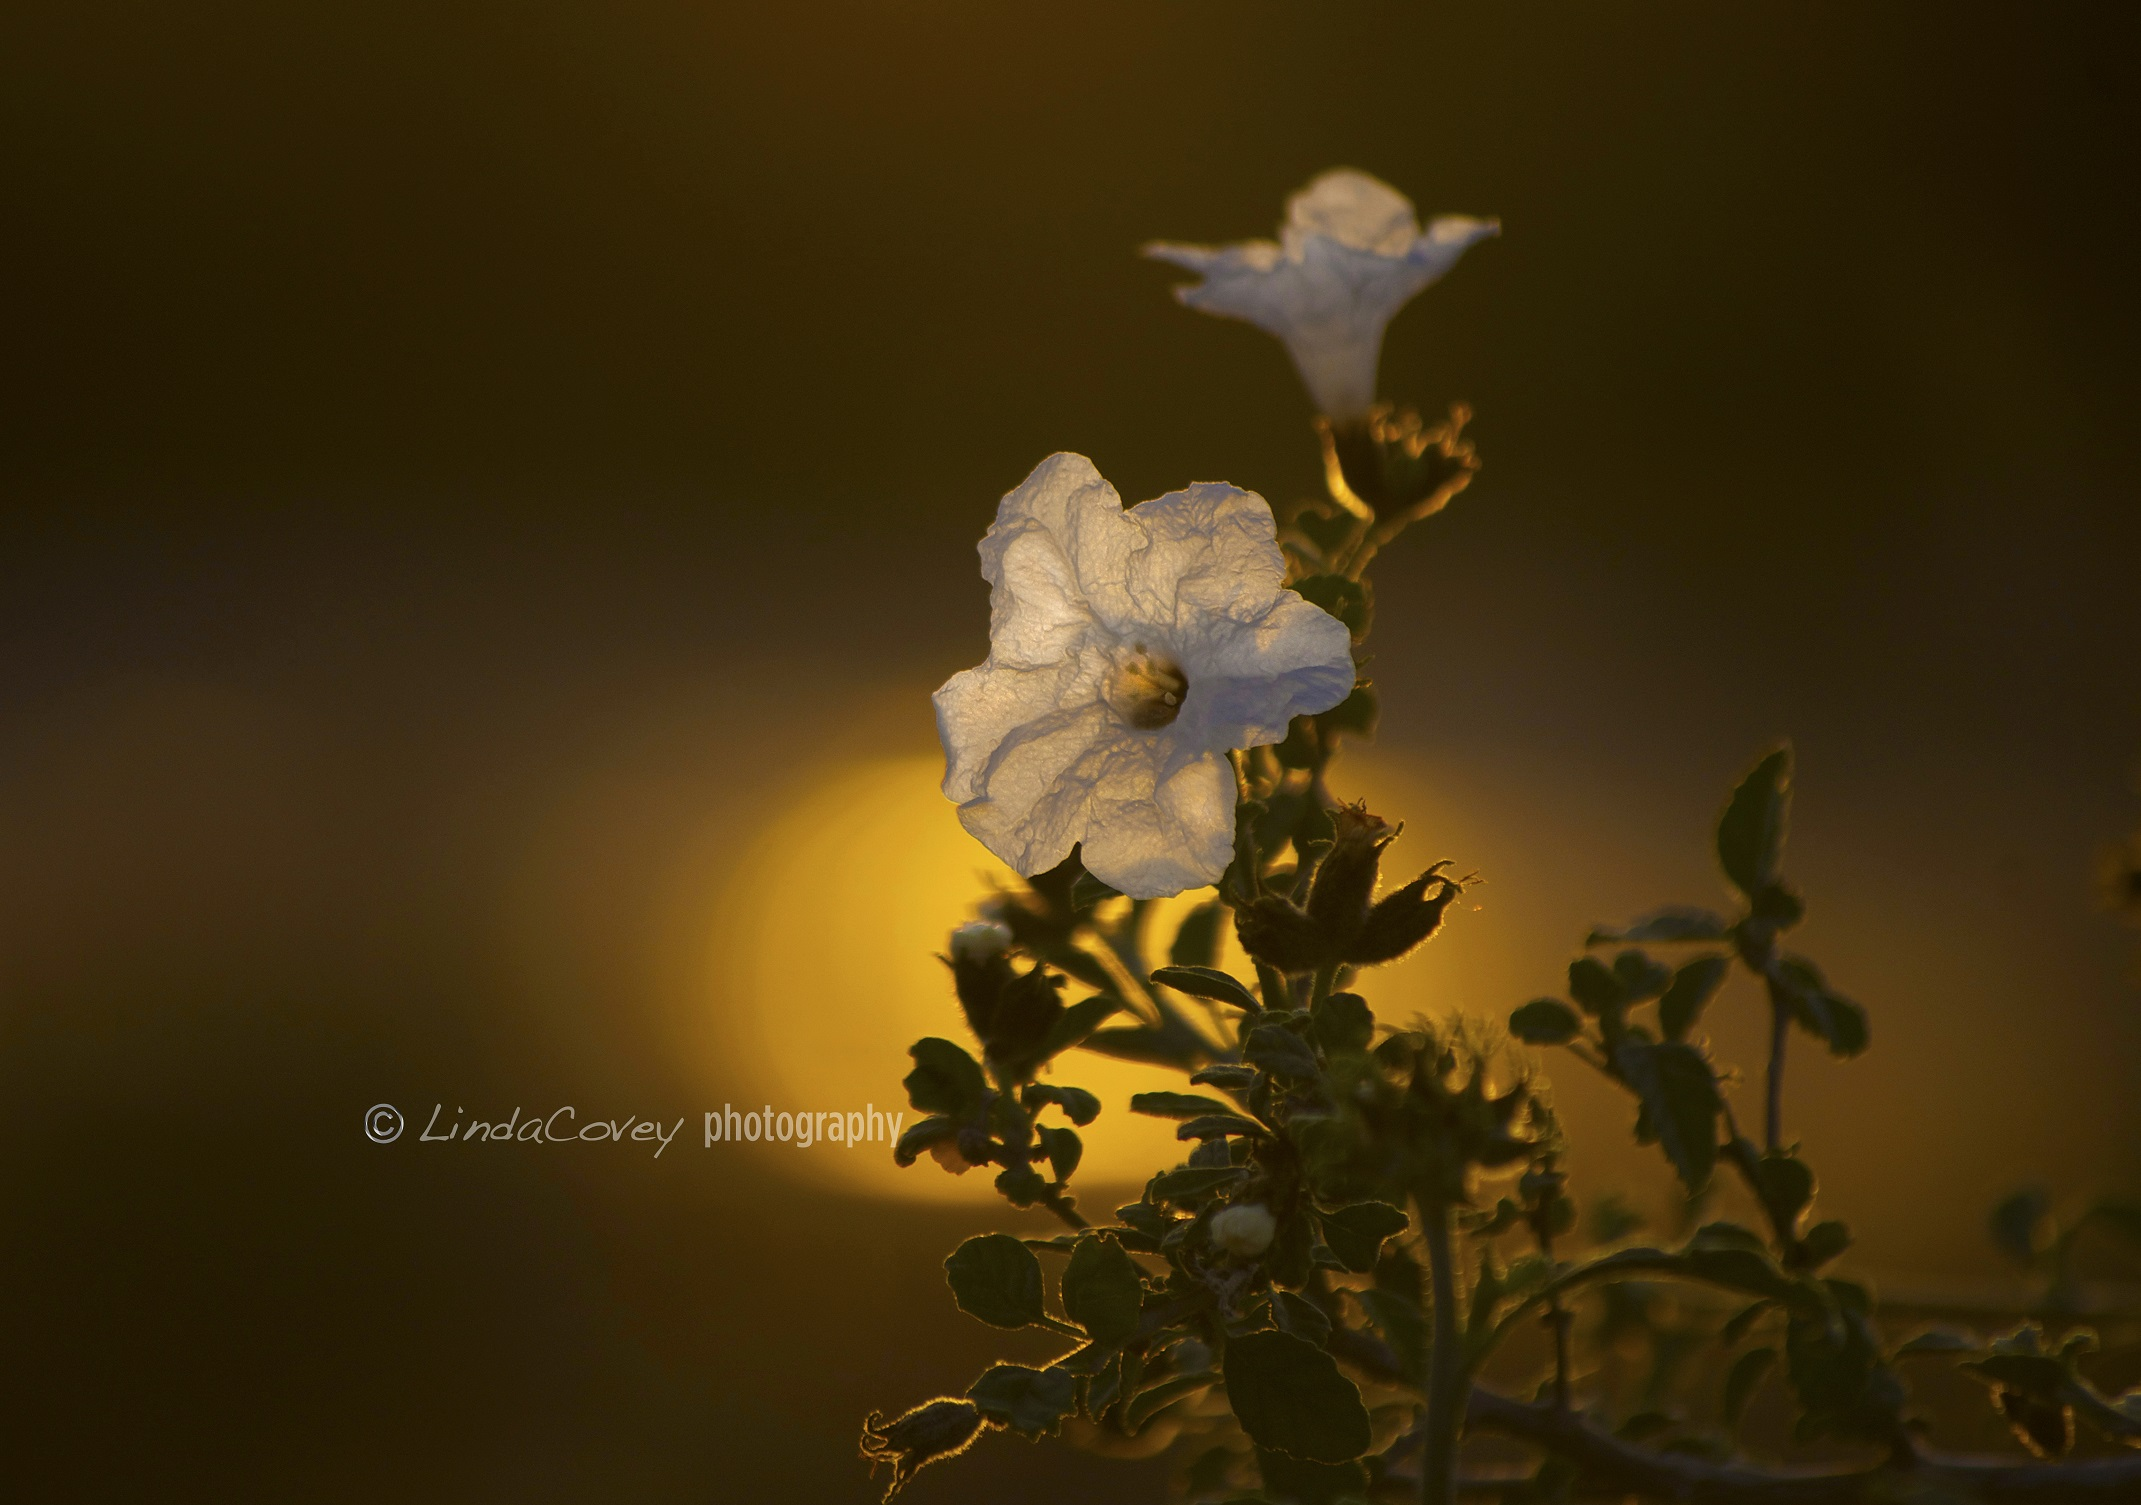 © White Pitnunia in a backlit Sunset. Photograph by Linda Covey. www.photographyworld.org